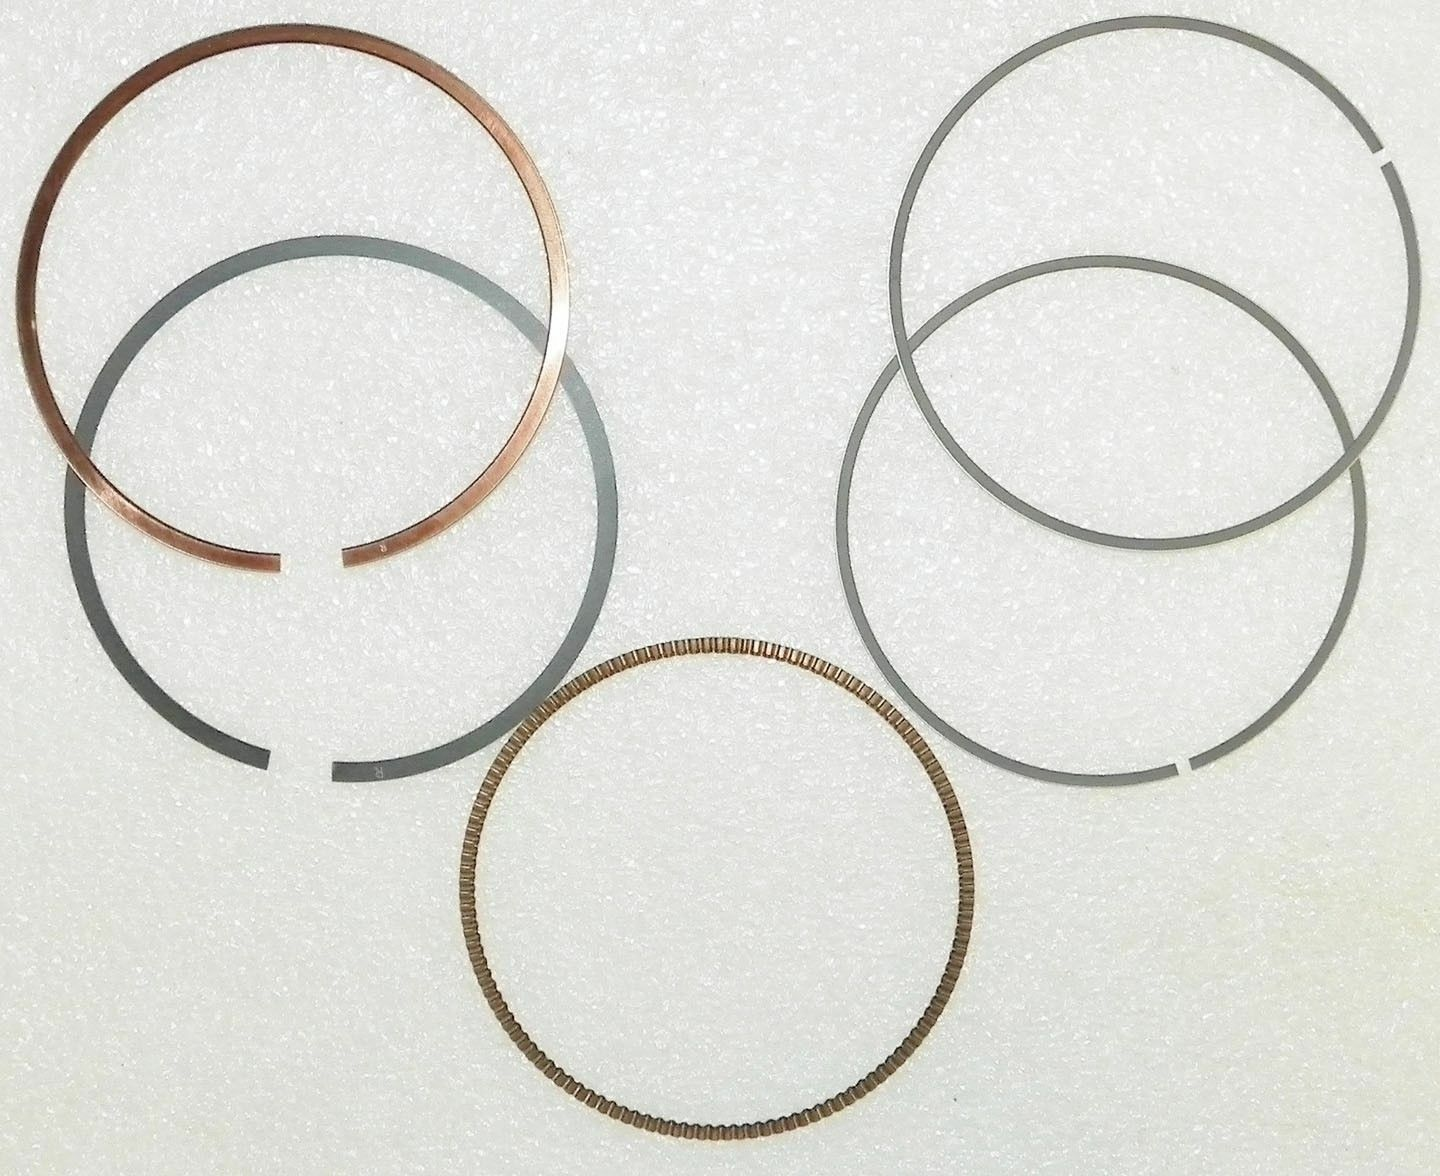 WSM Yamaha 1000 FX Piston Rings 010-970-06 - .75mm SIZE ONLY OEM 4XV-11603-00